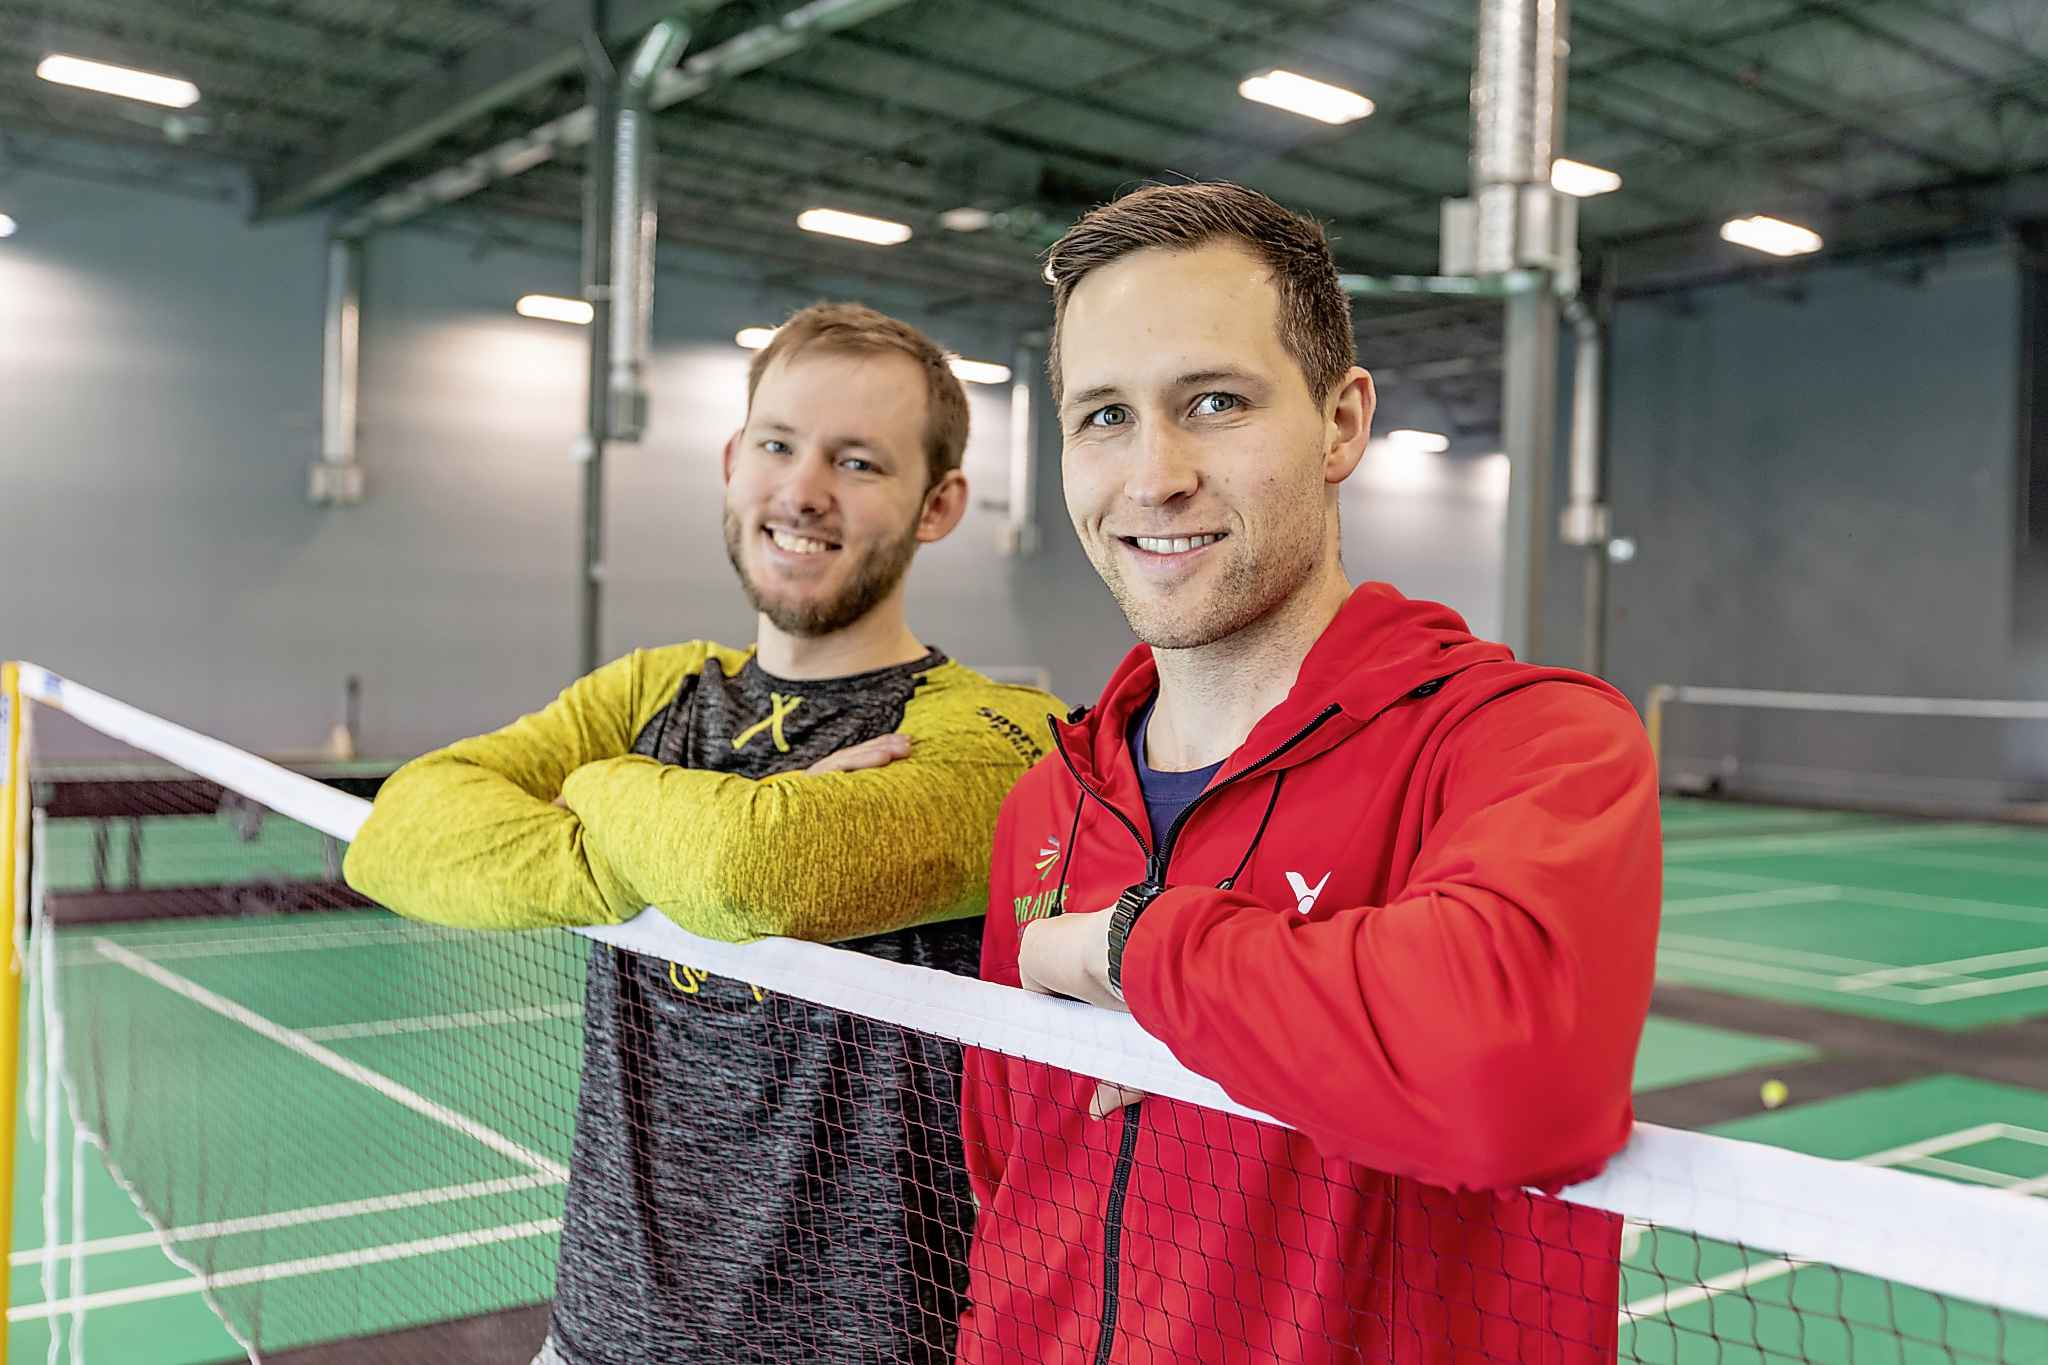 Provincial Coach Justin Friesen (left) and Executive Director Ryan Giesbrecht believe people will come to their new facility dedicated only to badminton. (Photos by Sasha Sefter / Winnipeg Free Press)